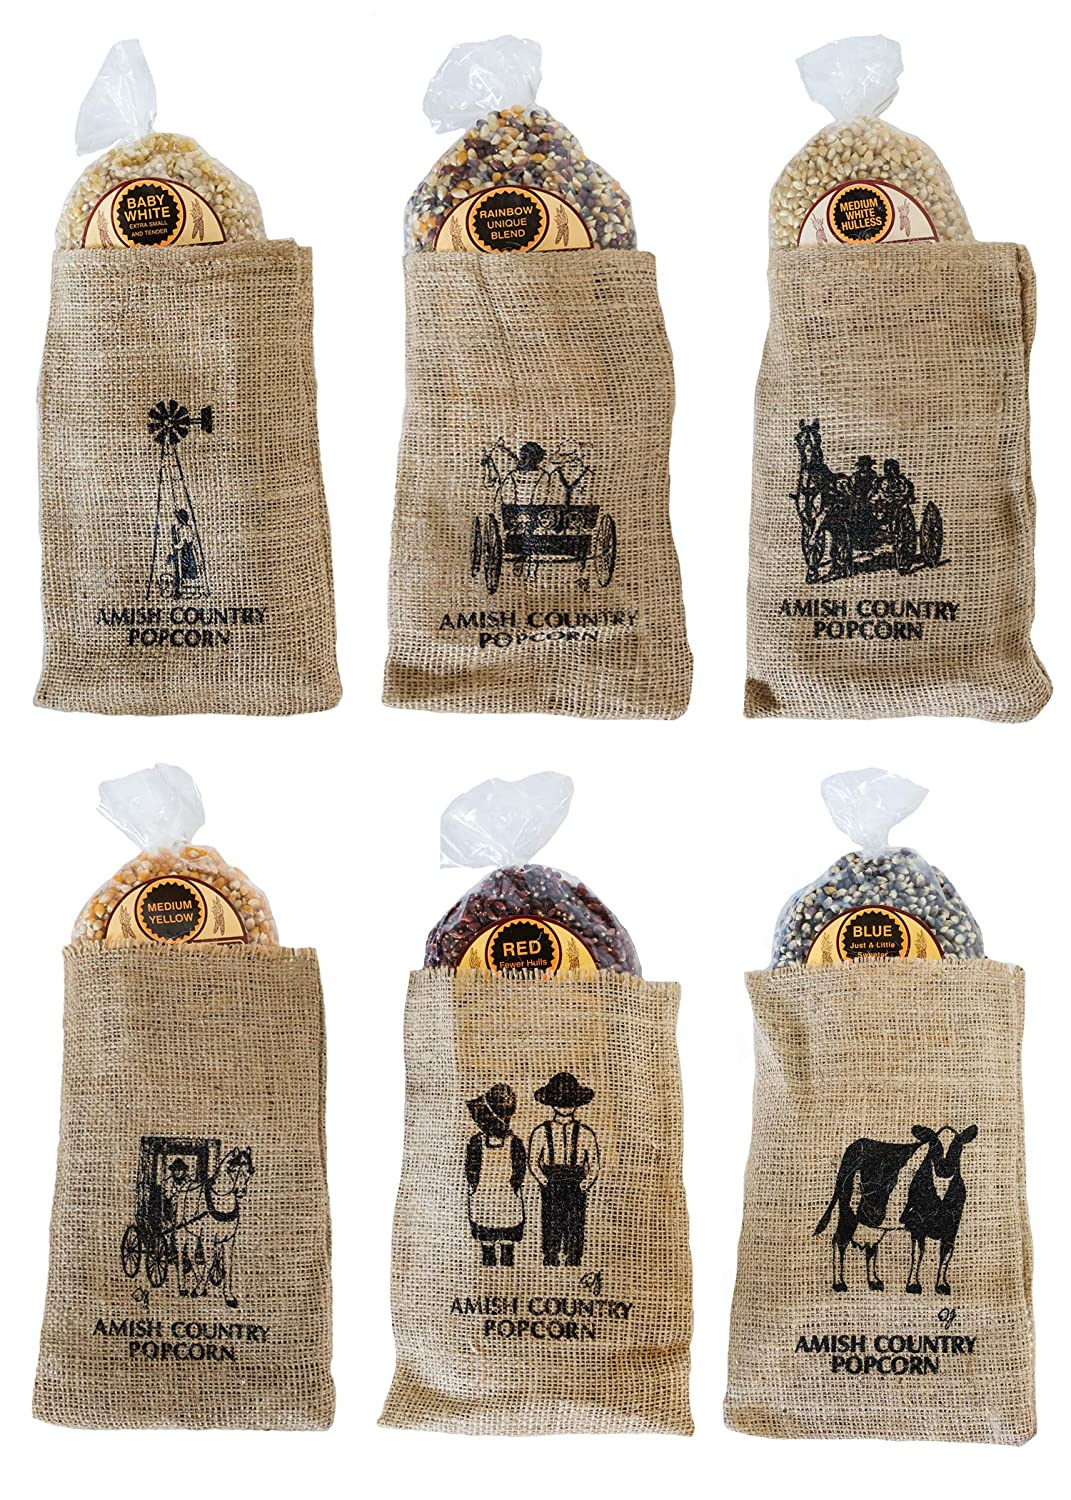 Amish Country Popcorn   6 Piece Burlap Gift Set (2 Pounds Each) Medium Yellow, Baby White, Medium White, Rainbow, Red, & Blue Kernels   Old Fashioned with Recipe Guide